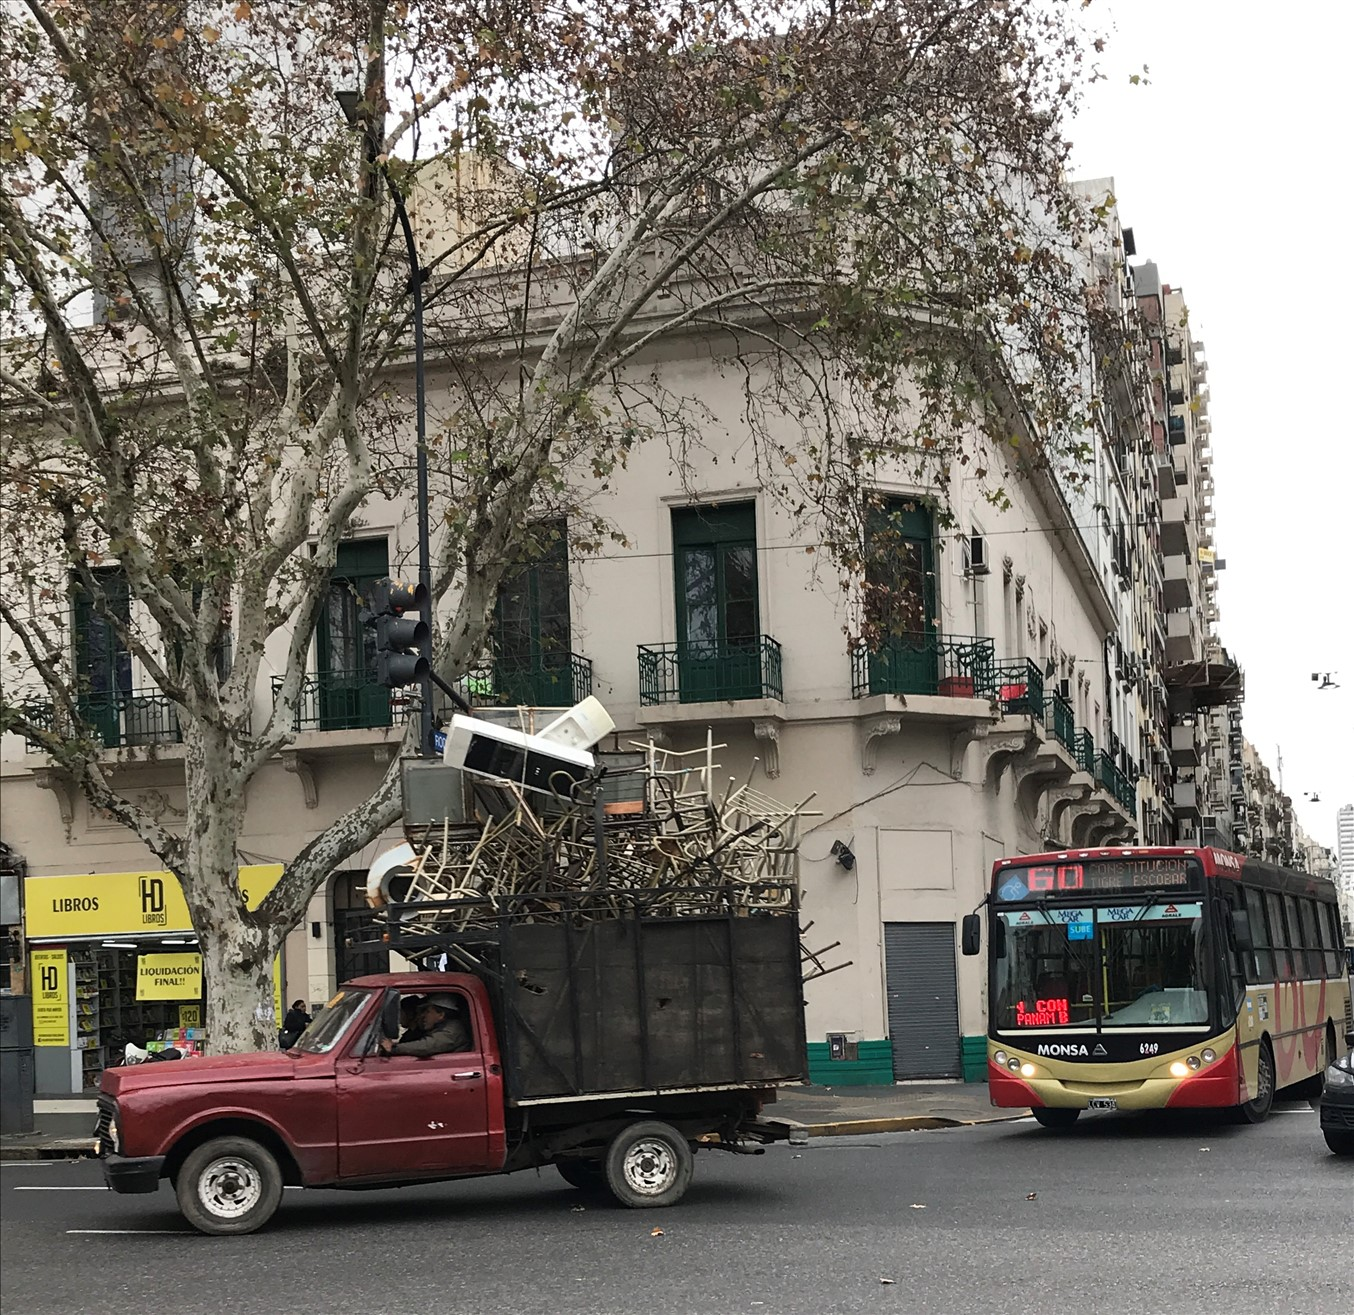 2019 06 29 112 Buenos Aires.jpg